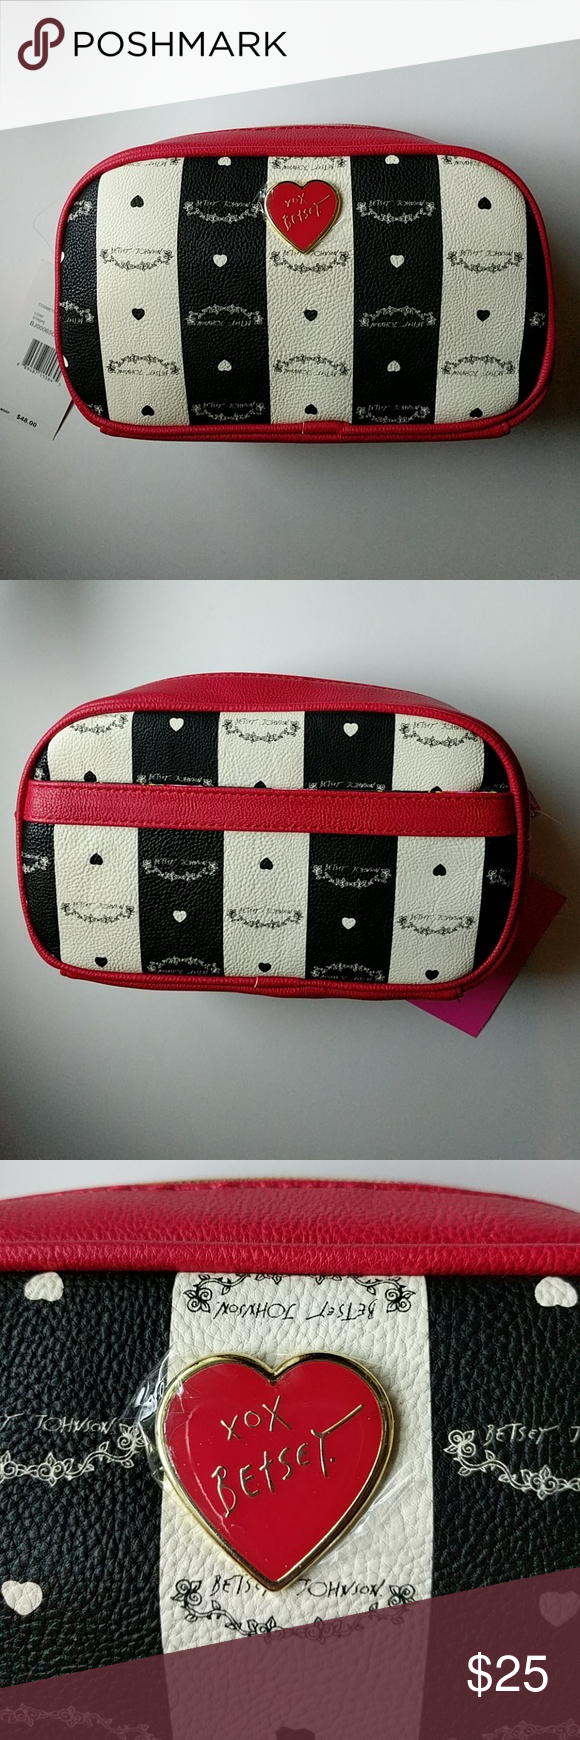 Betsy Johnson Loaf Stripe Cosmetic Bag Super cute red, white and black stripe design with outside pocket for extra storage. Beautiful floral design on the inside.  Bag size is 9.5 in. (24.13 cm.) length, 3.5 in. (8.80 cm.) width, and 6 in.(15.24 cm) height. Betsey Johnson Bags Cosmetic Bags & Cases